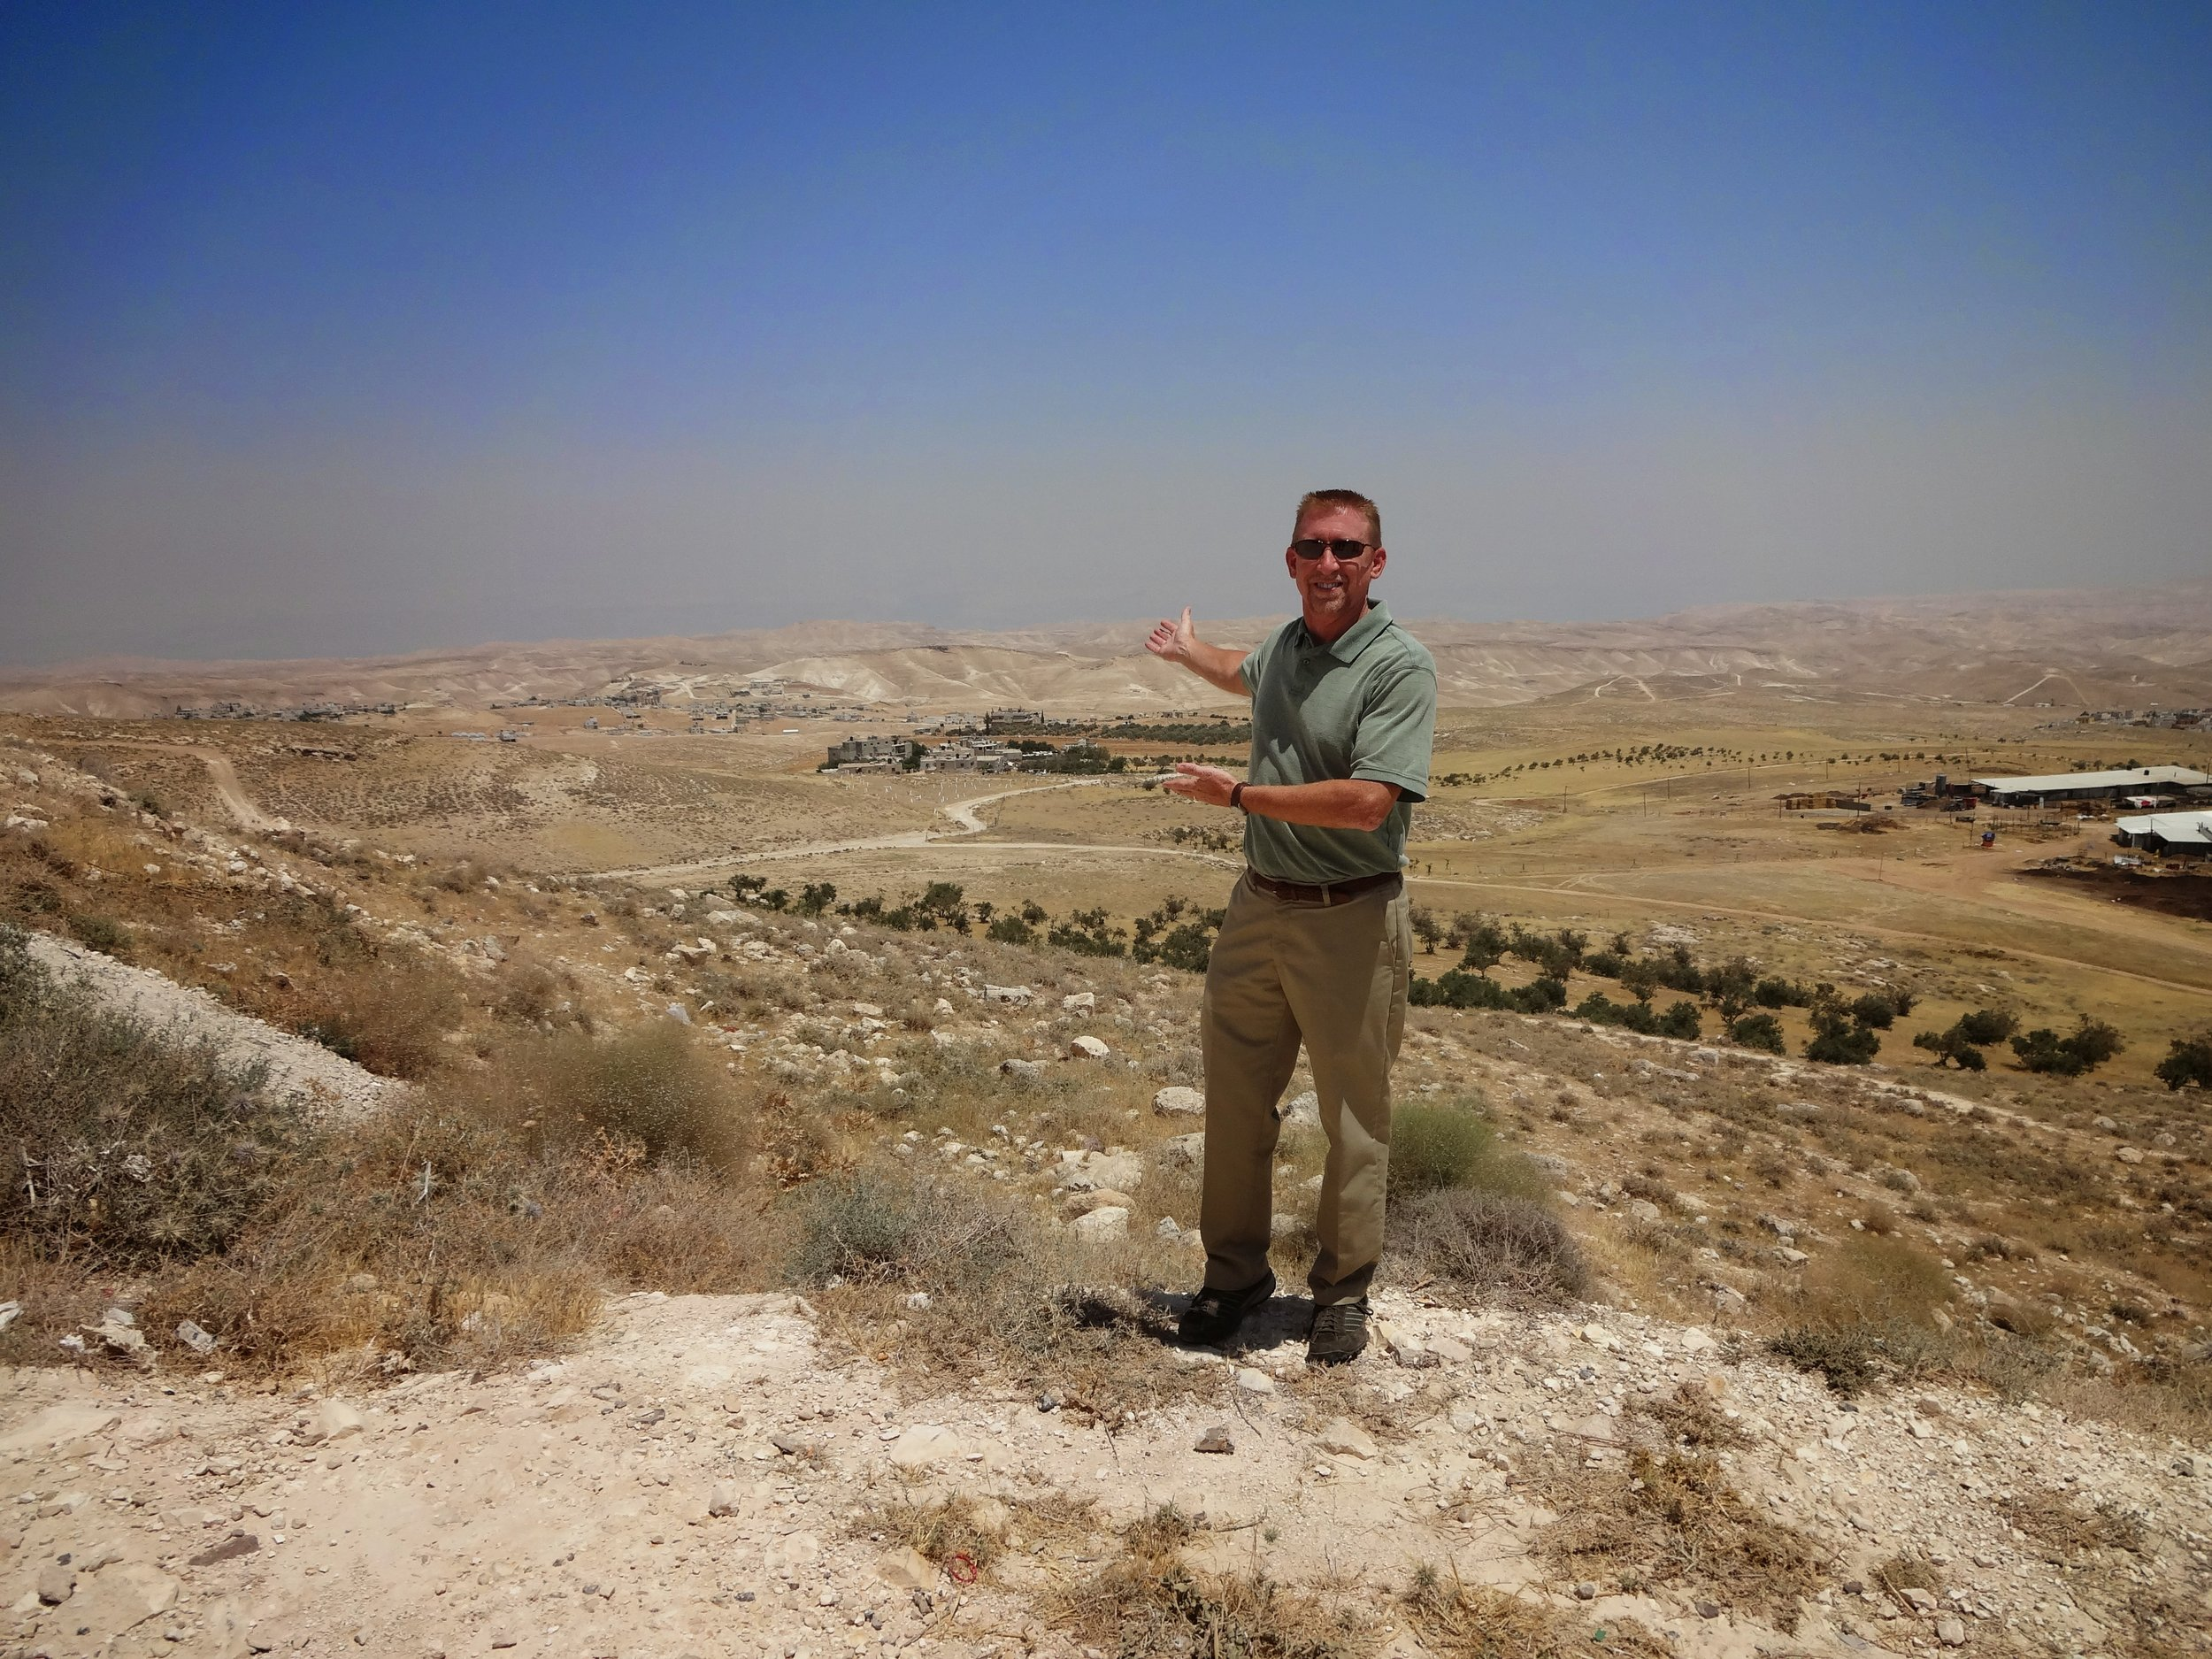 Tim Smelser, one of the members of our tour, stands with the Negeb in the background.